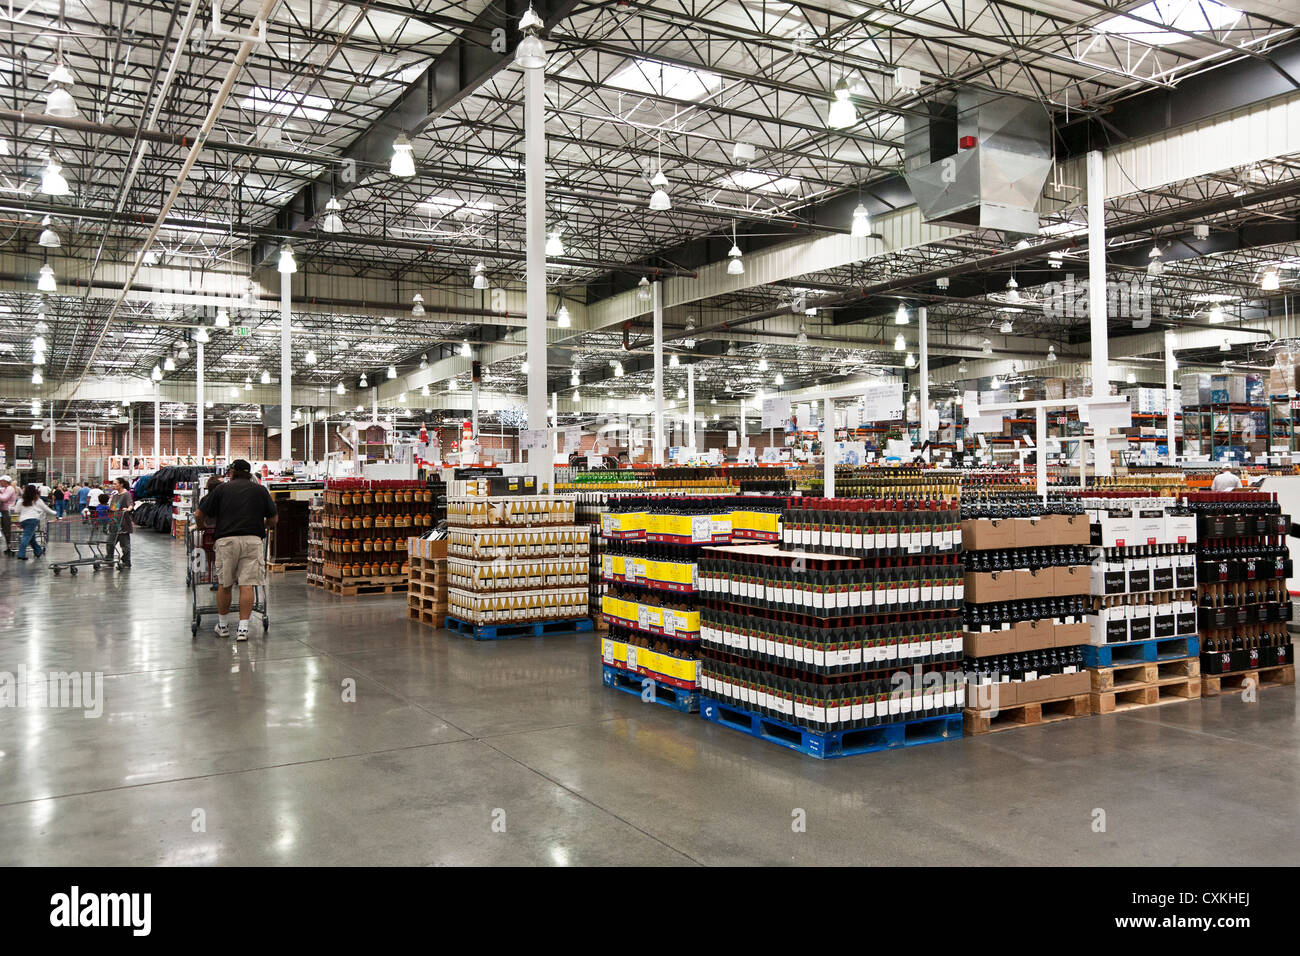 High Quality Customer Members Browse Wide Aisles Of Liquor Area In Vast Interior Space  Of Costco Big Box Warehouse Chain Retailer USA